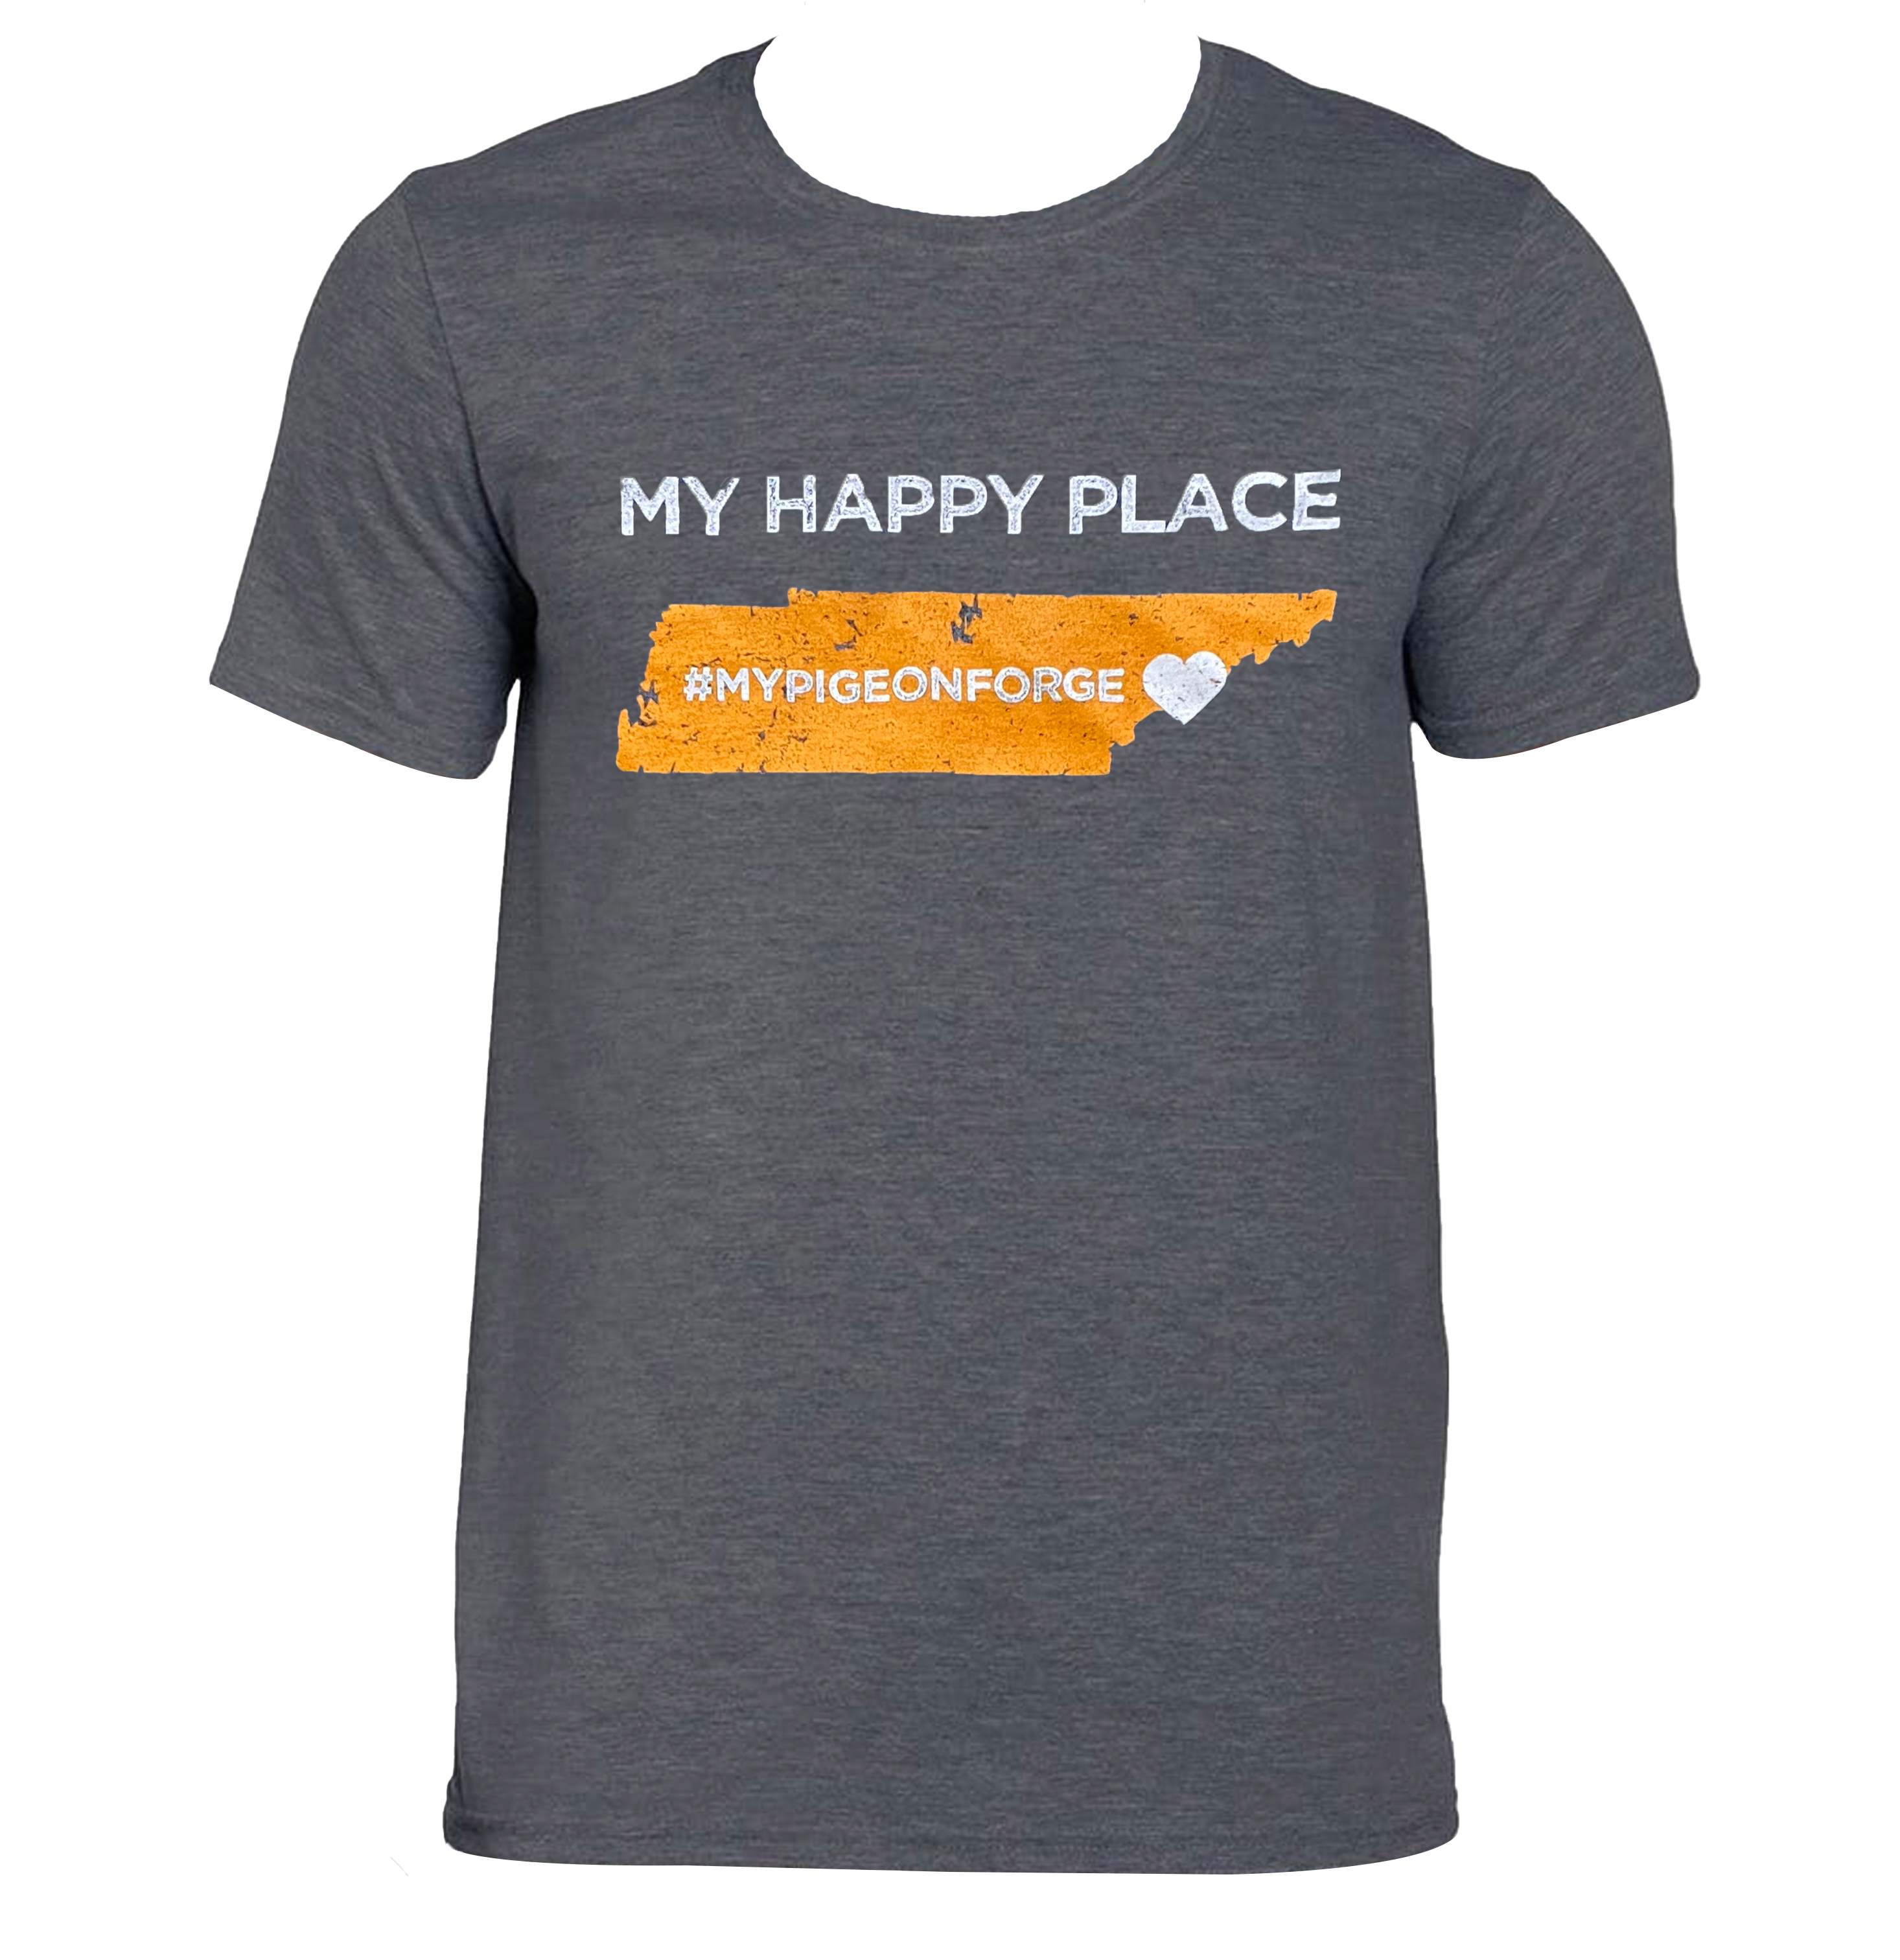 My Happy Place T-Shirt: M